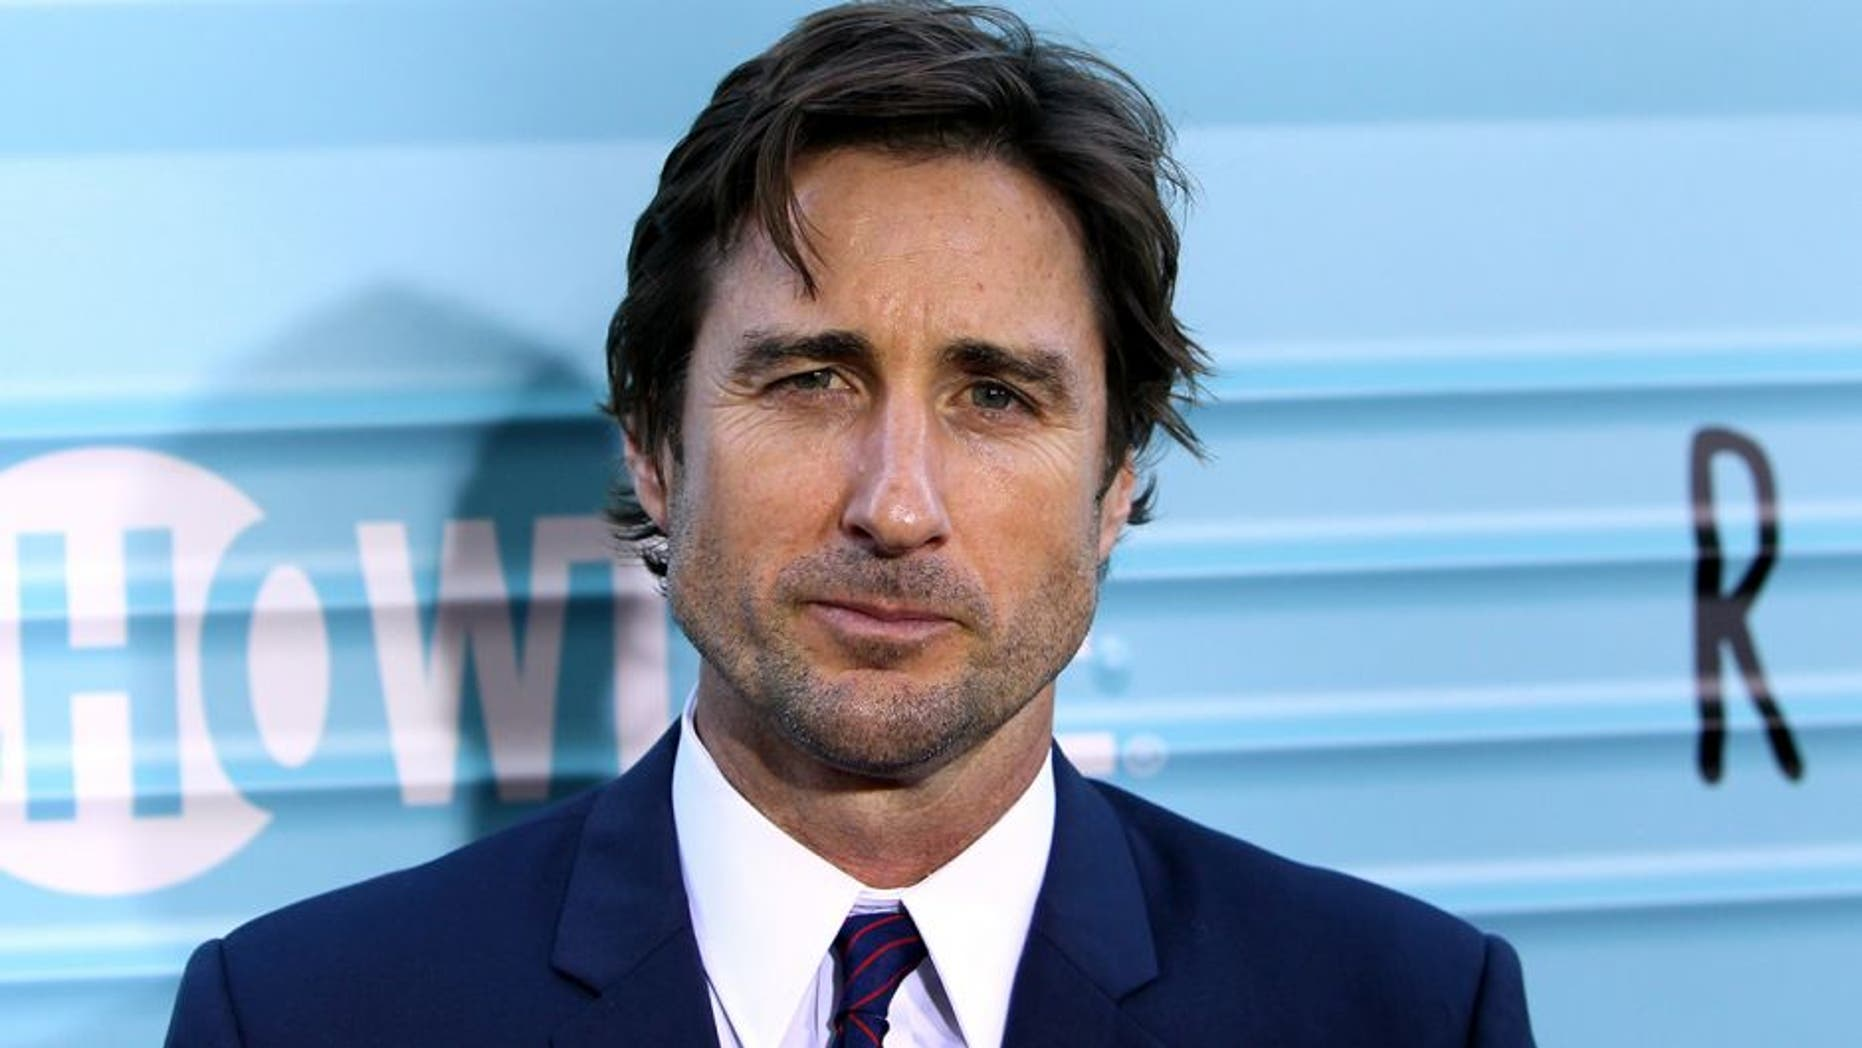 """LOS ANGELES, CA - JUNE 06: Actor Luke Wilson attends the premiere for Showtime's """"Roadies"""" at The Theatre at Ace Hotel on June 6, 2016 in Los Angeles, California. (Photo by David Livingston/Getty Images)"""